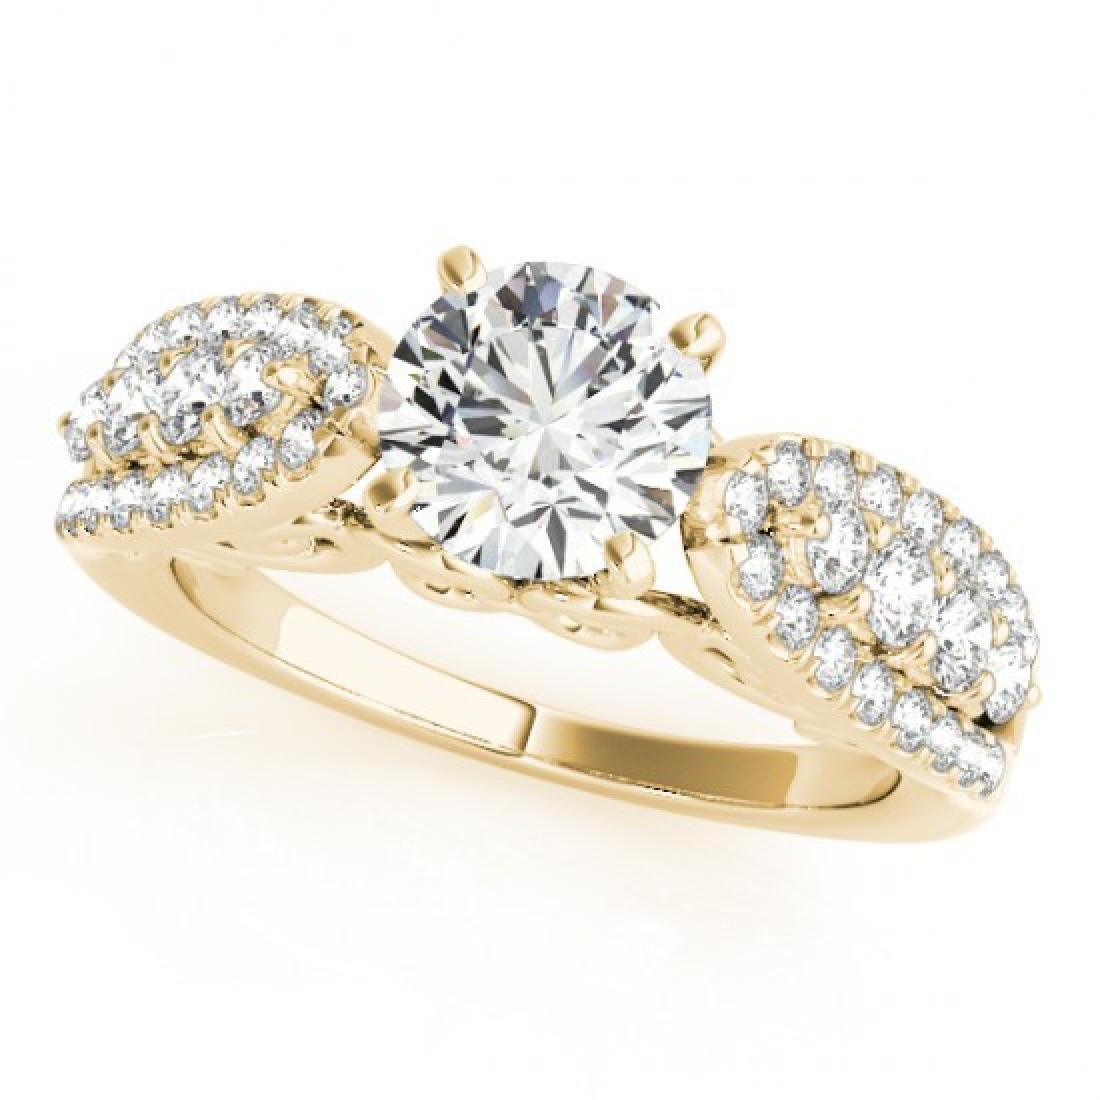 1.7 CTW Certified VS/SI Diamond Solitaire Ring 14K